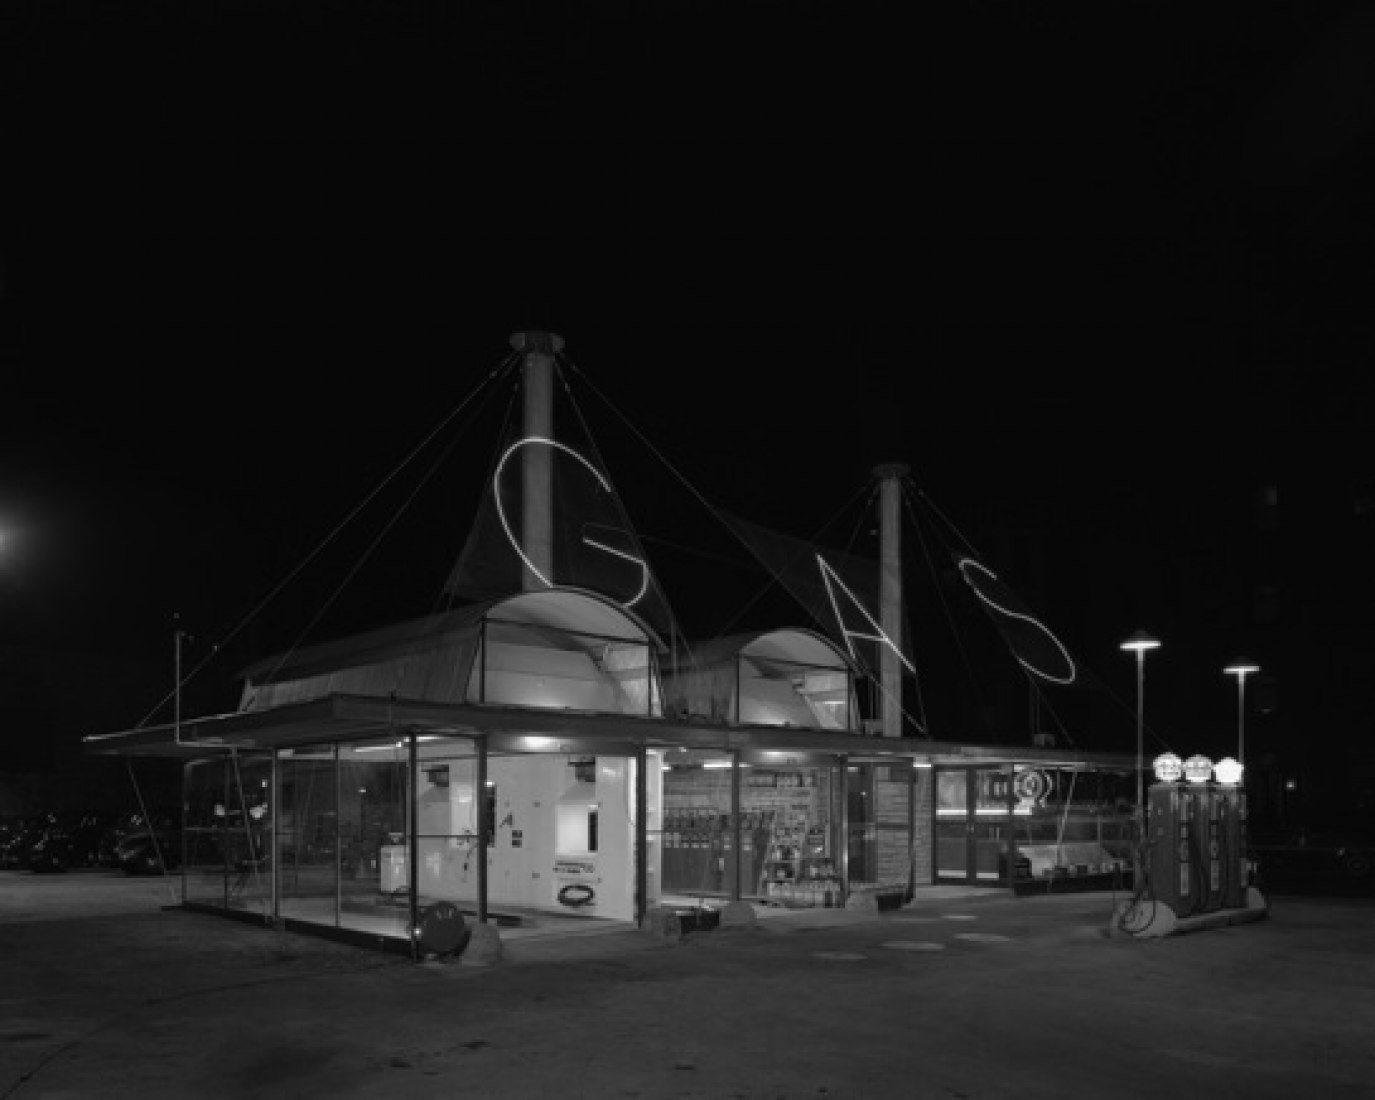 Photograph: Clark-Maple Gasoline Service Station, Chicago, IL, 1938.  Hedrich Blessing, courtesy of the Chicago History Museum.